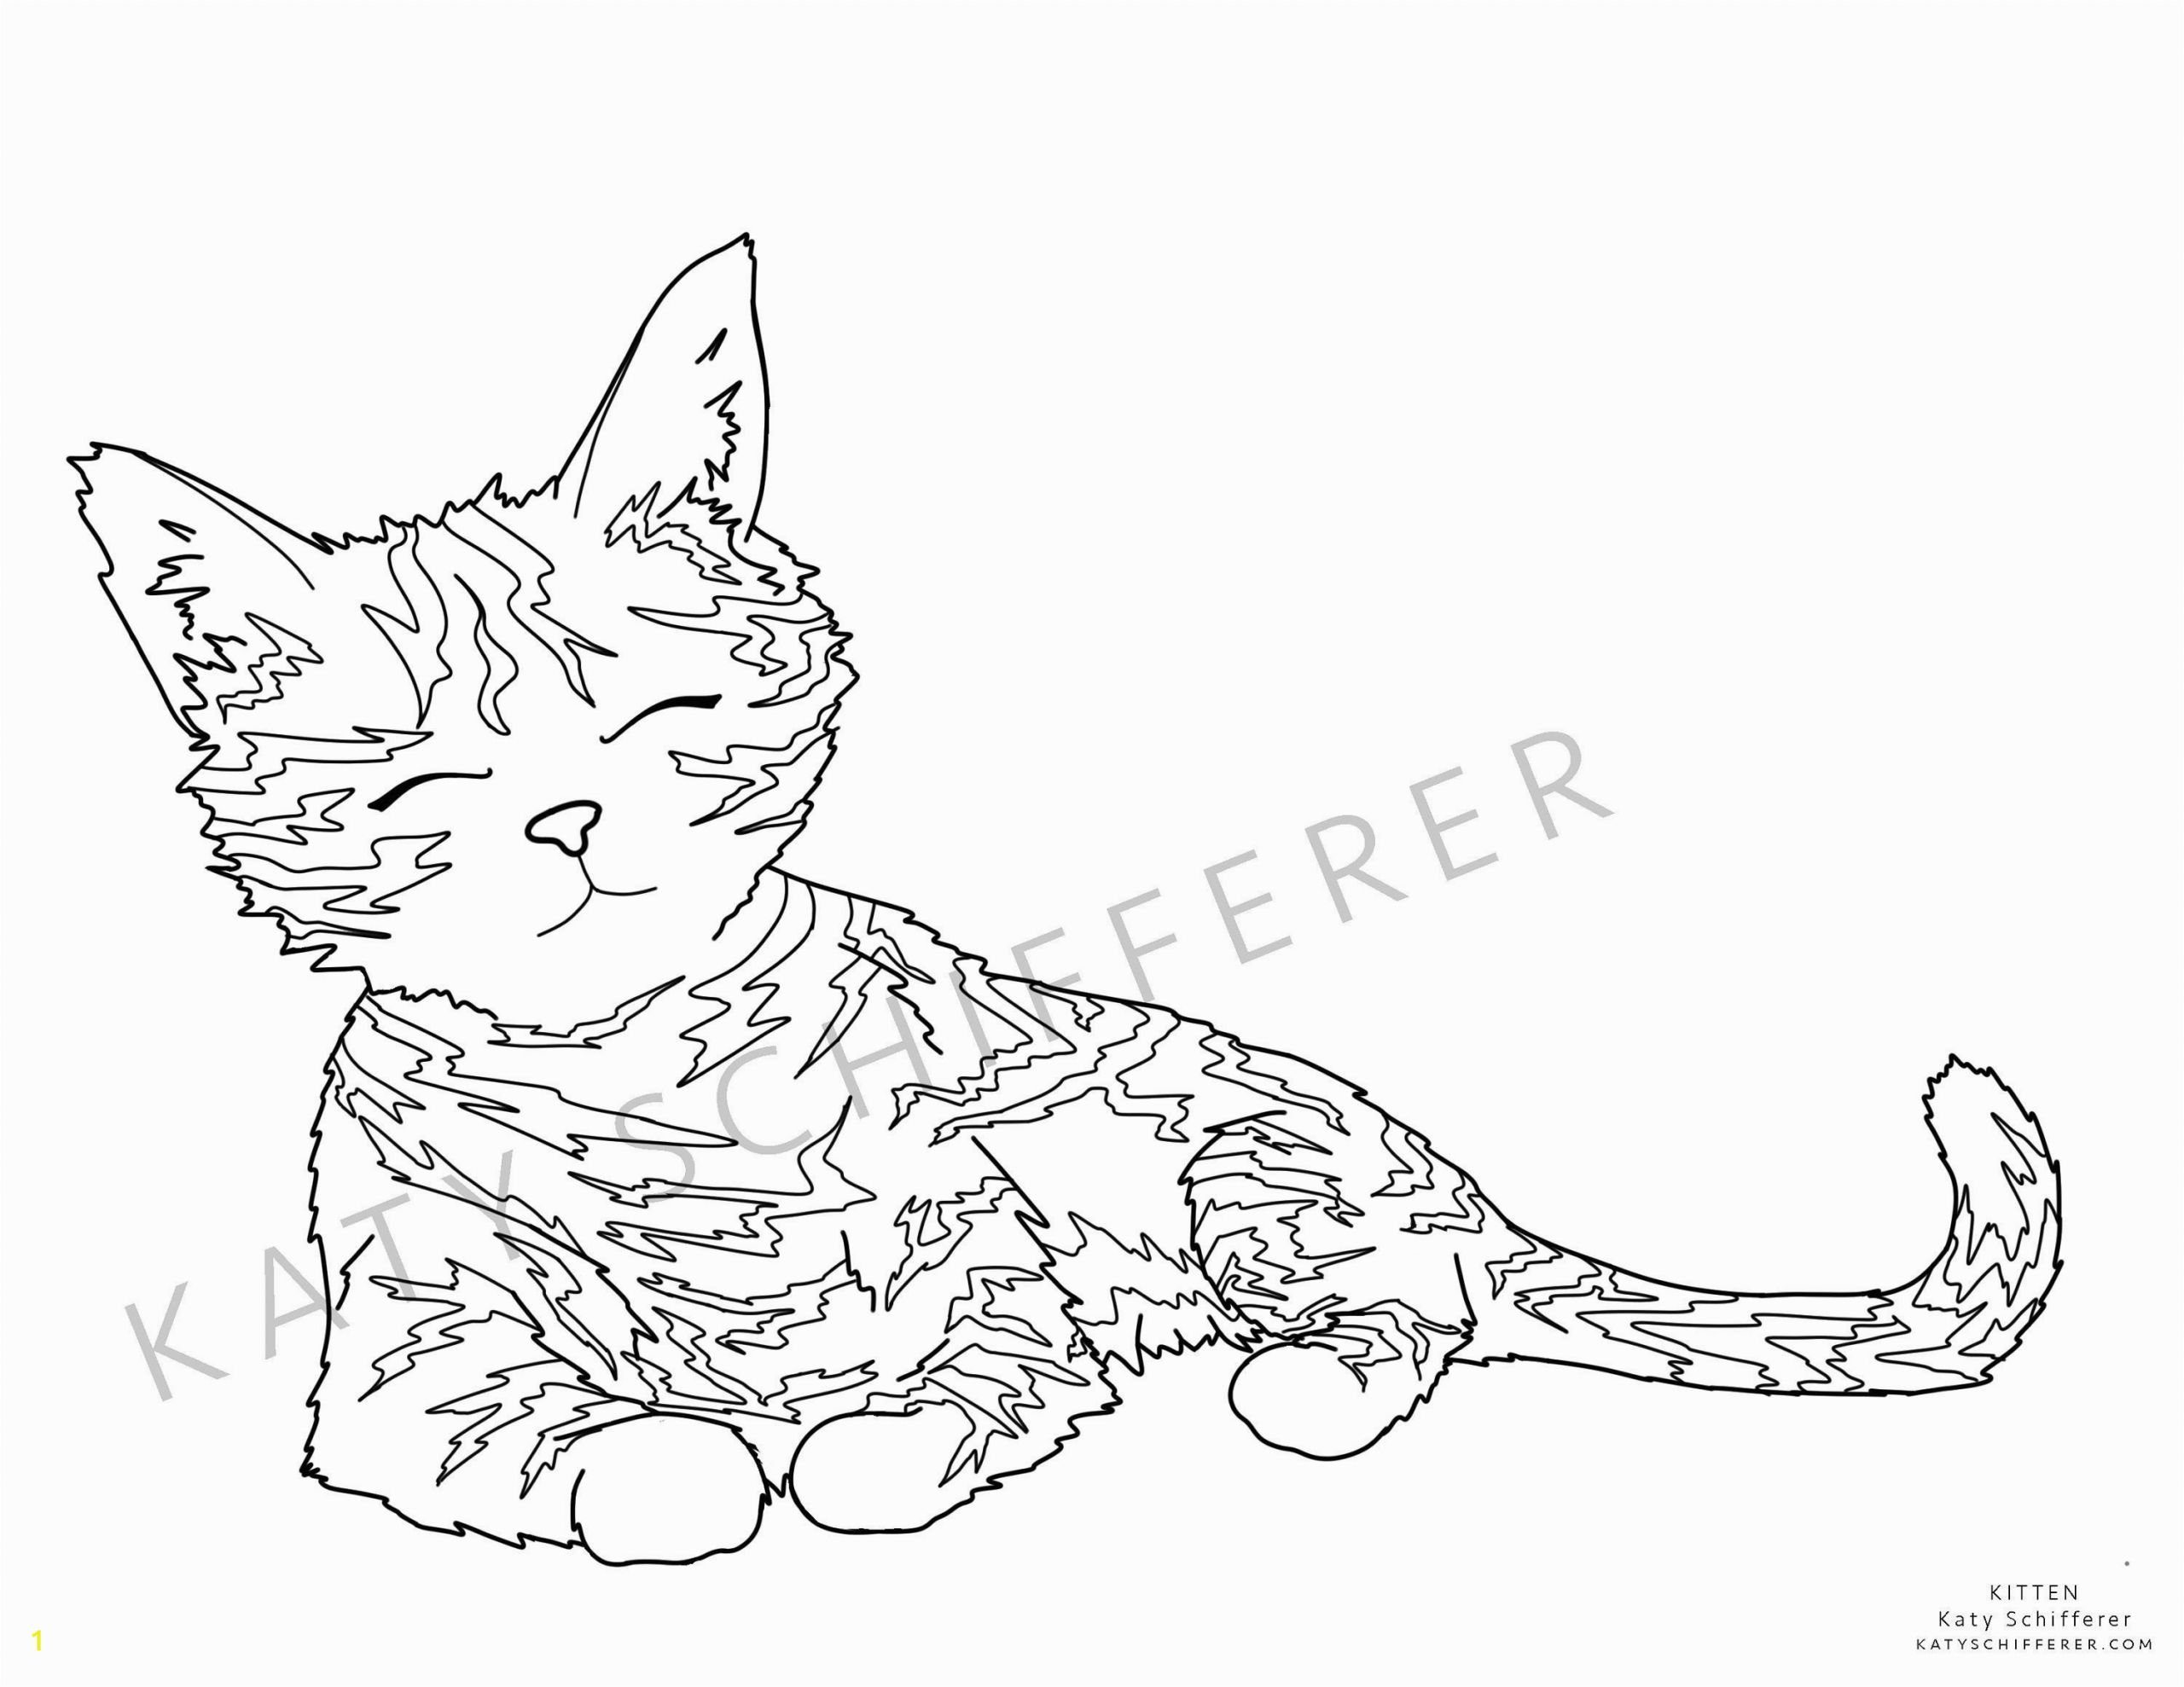 real cat and kitten coloringes printable images of cats sabadaphnecottage warrior best tremendous cute image for sheets extraordinary